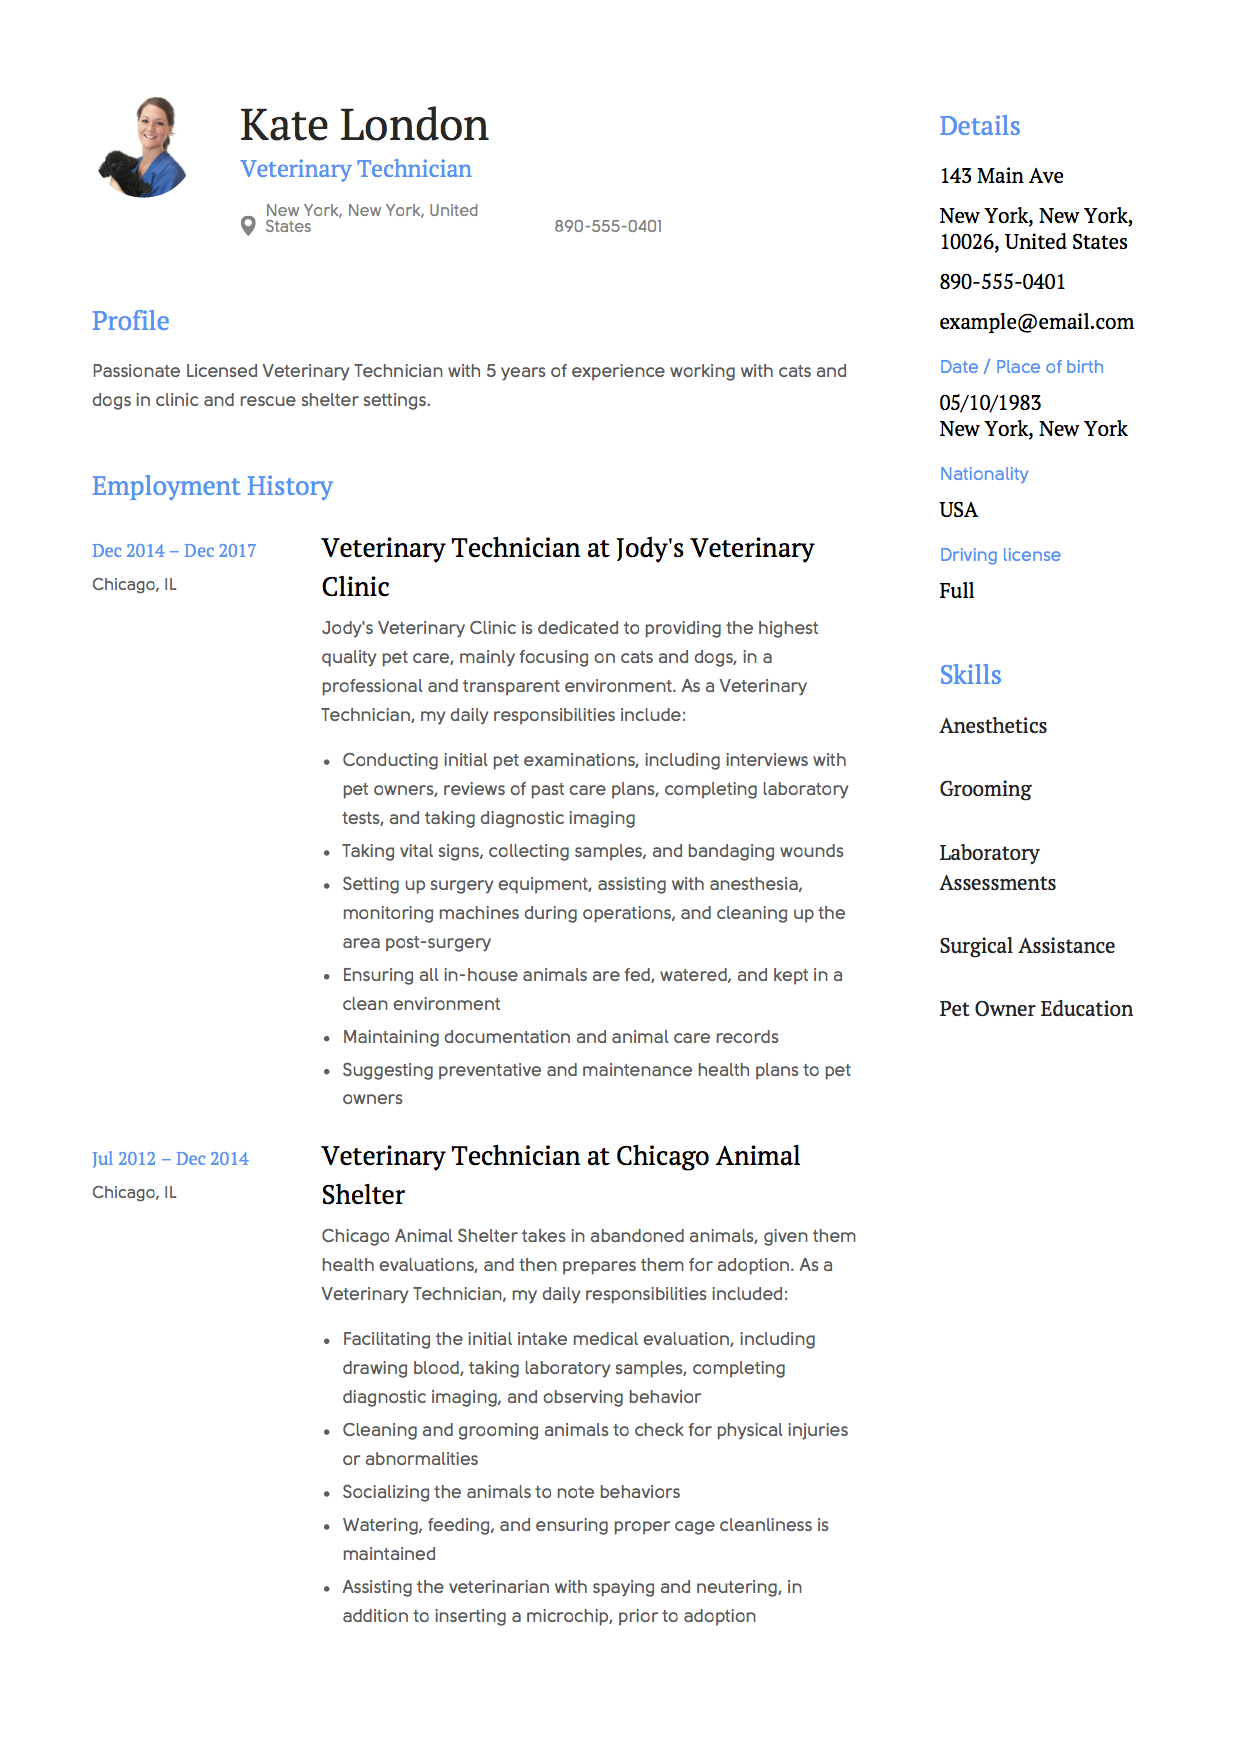 Veterinary Technician Resume 5 Years Experience